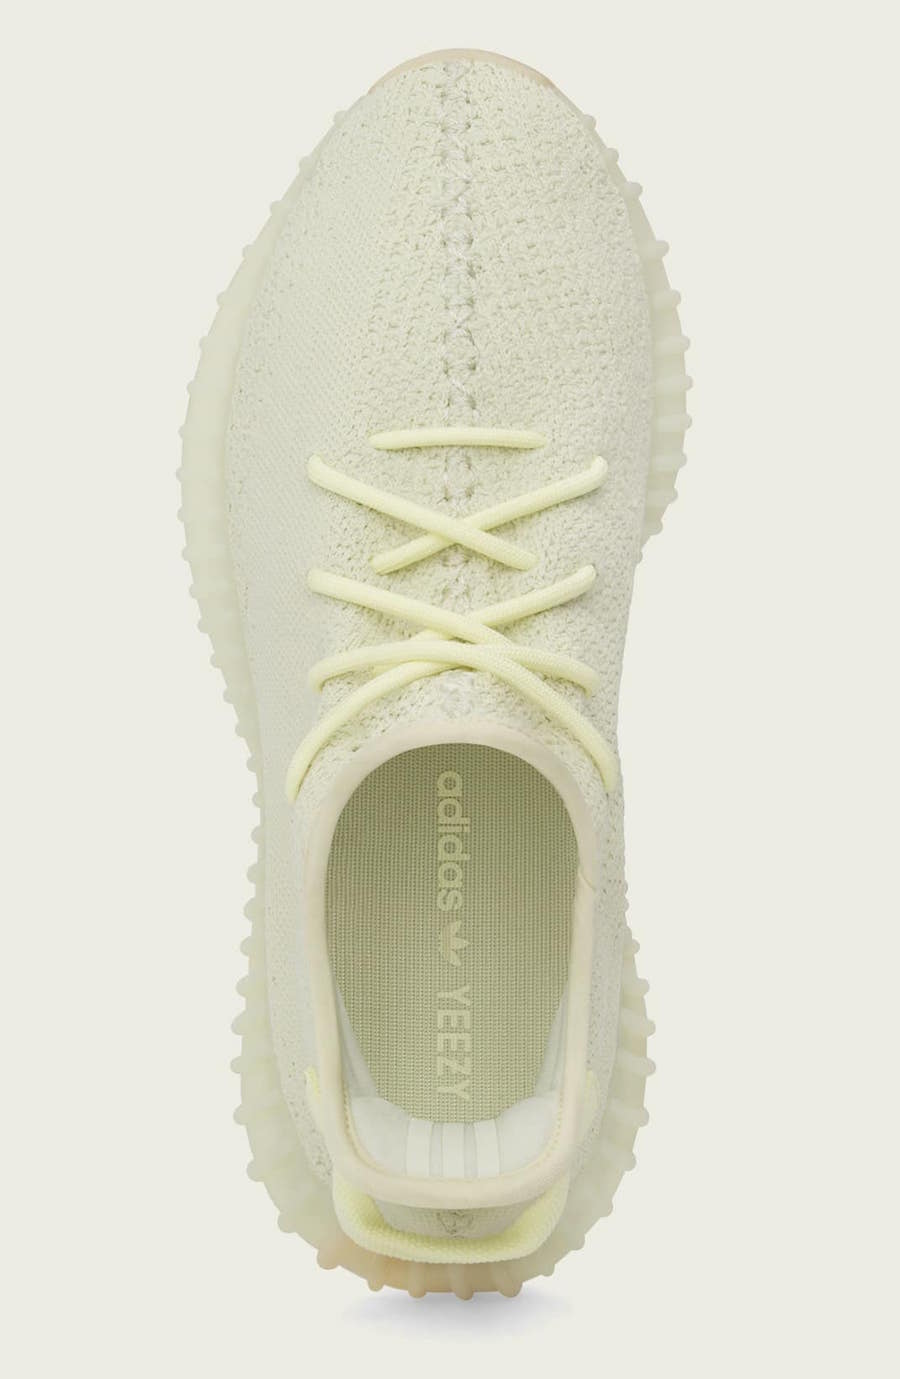 Adidas Yeezy 350 Boost V2 Butter Online Links Raffles Sepatu Ultra 30 Official Photos